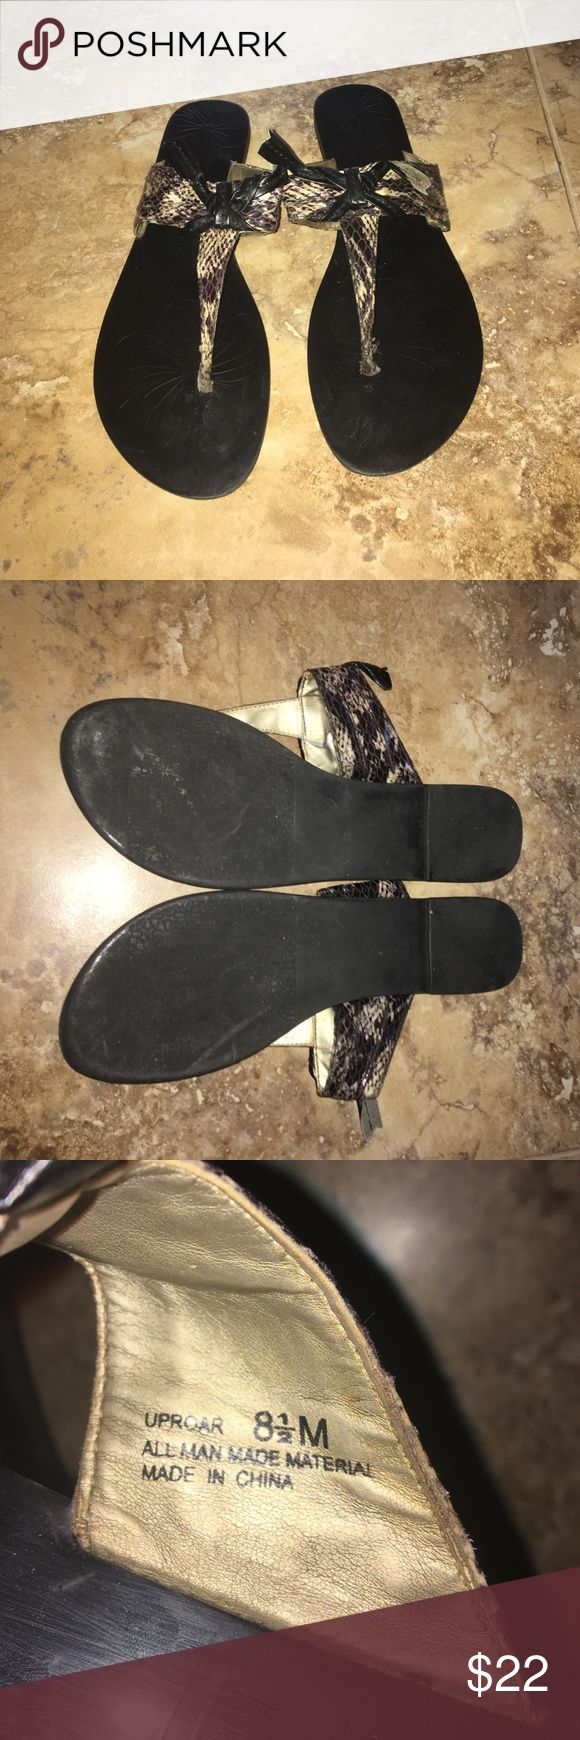 Chinese laundry sandals Good condition Chinese laundry sandals/ flip flops size 8.5 Chinese Laundry Shoes Sandals